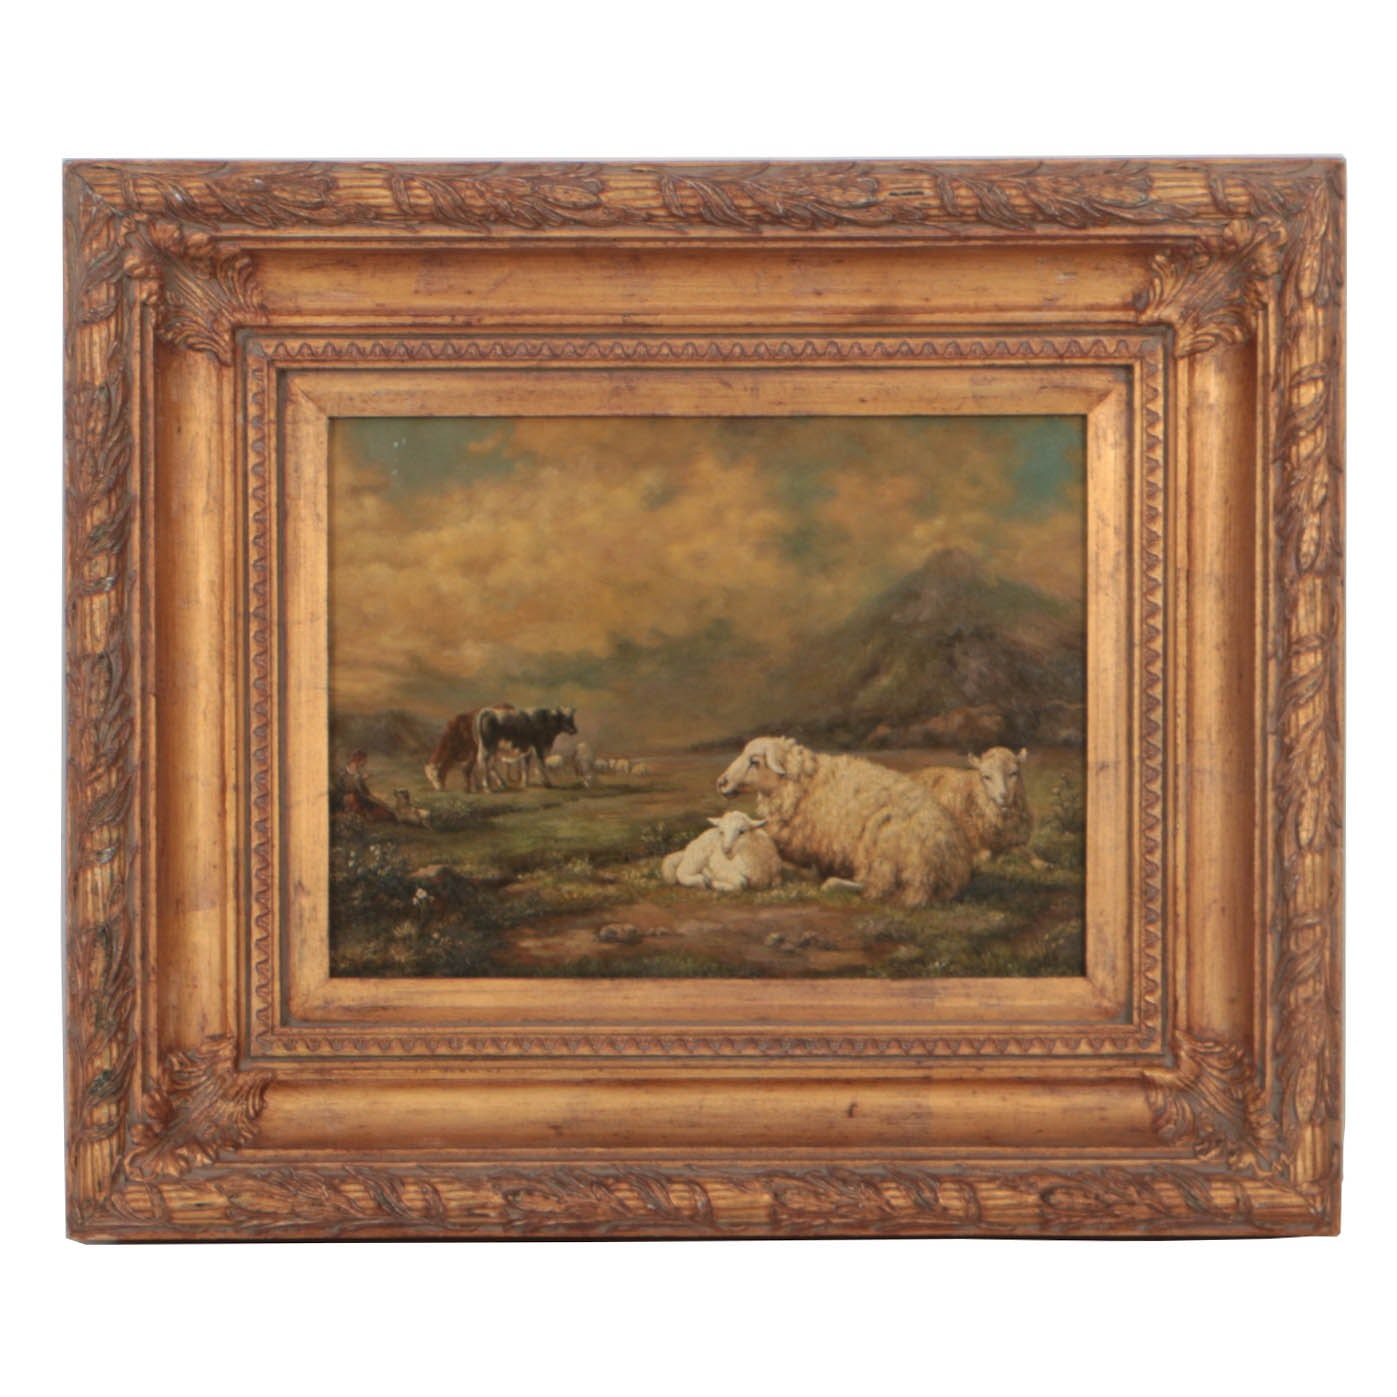 Antique Oil Painting on Panel Pastoral Landscape